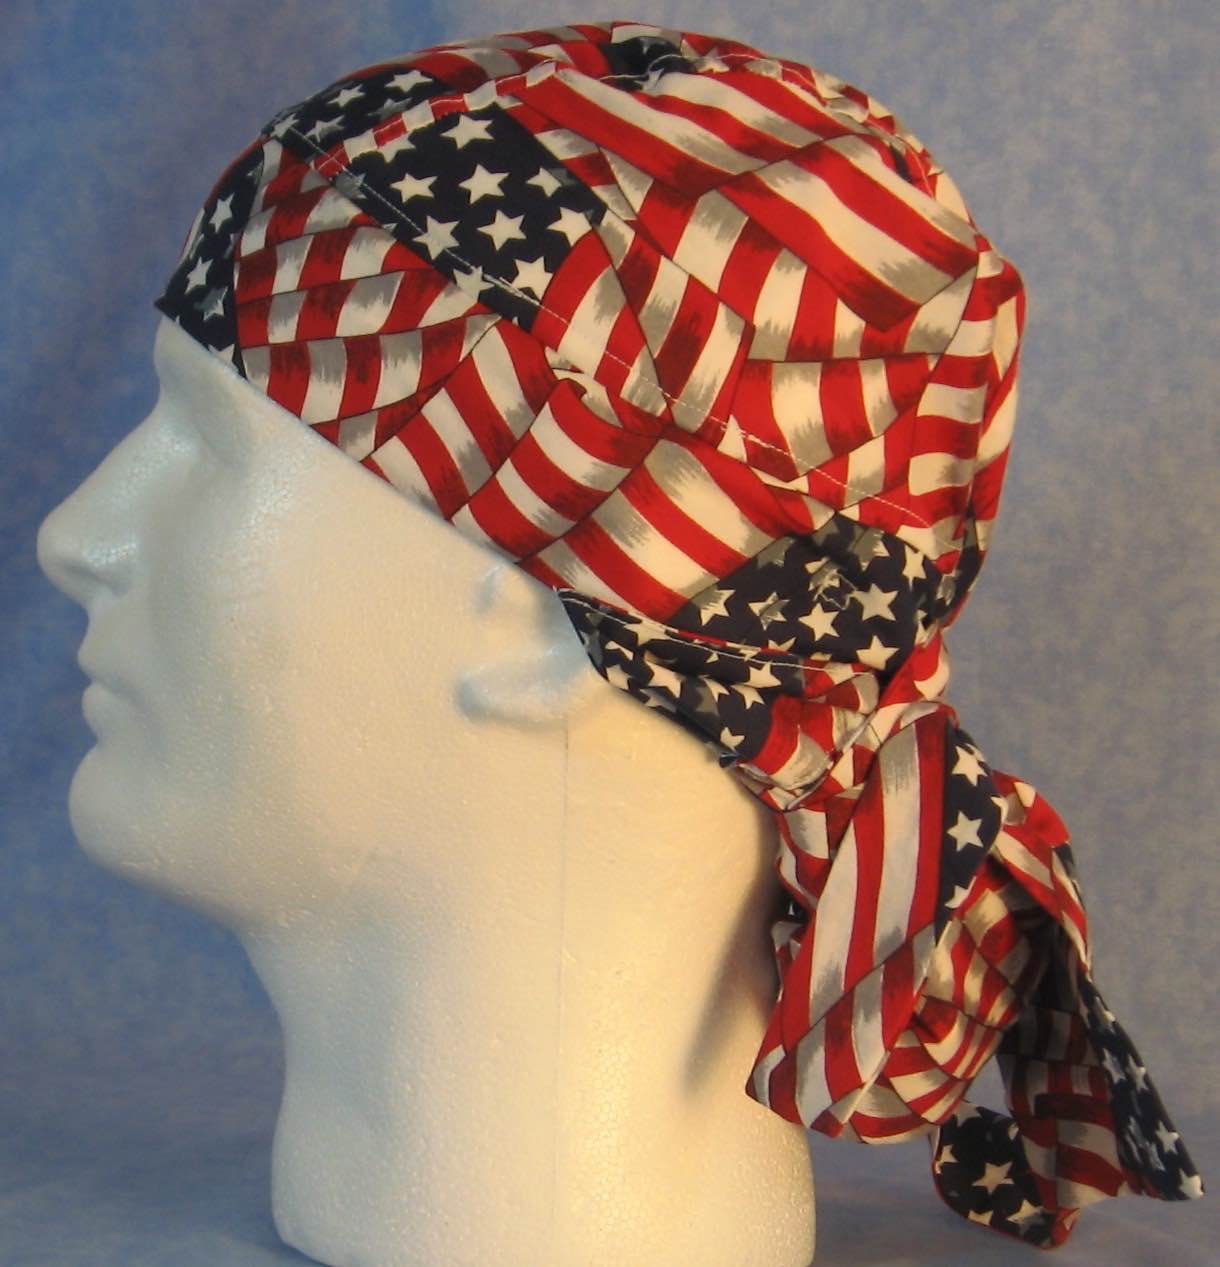 Hair Bag Do Rag in Flags Overall Big - Youth L-XL-Adult S